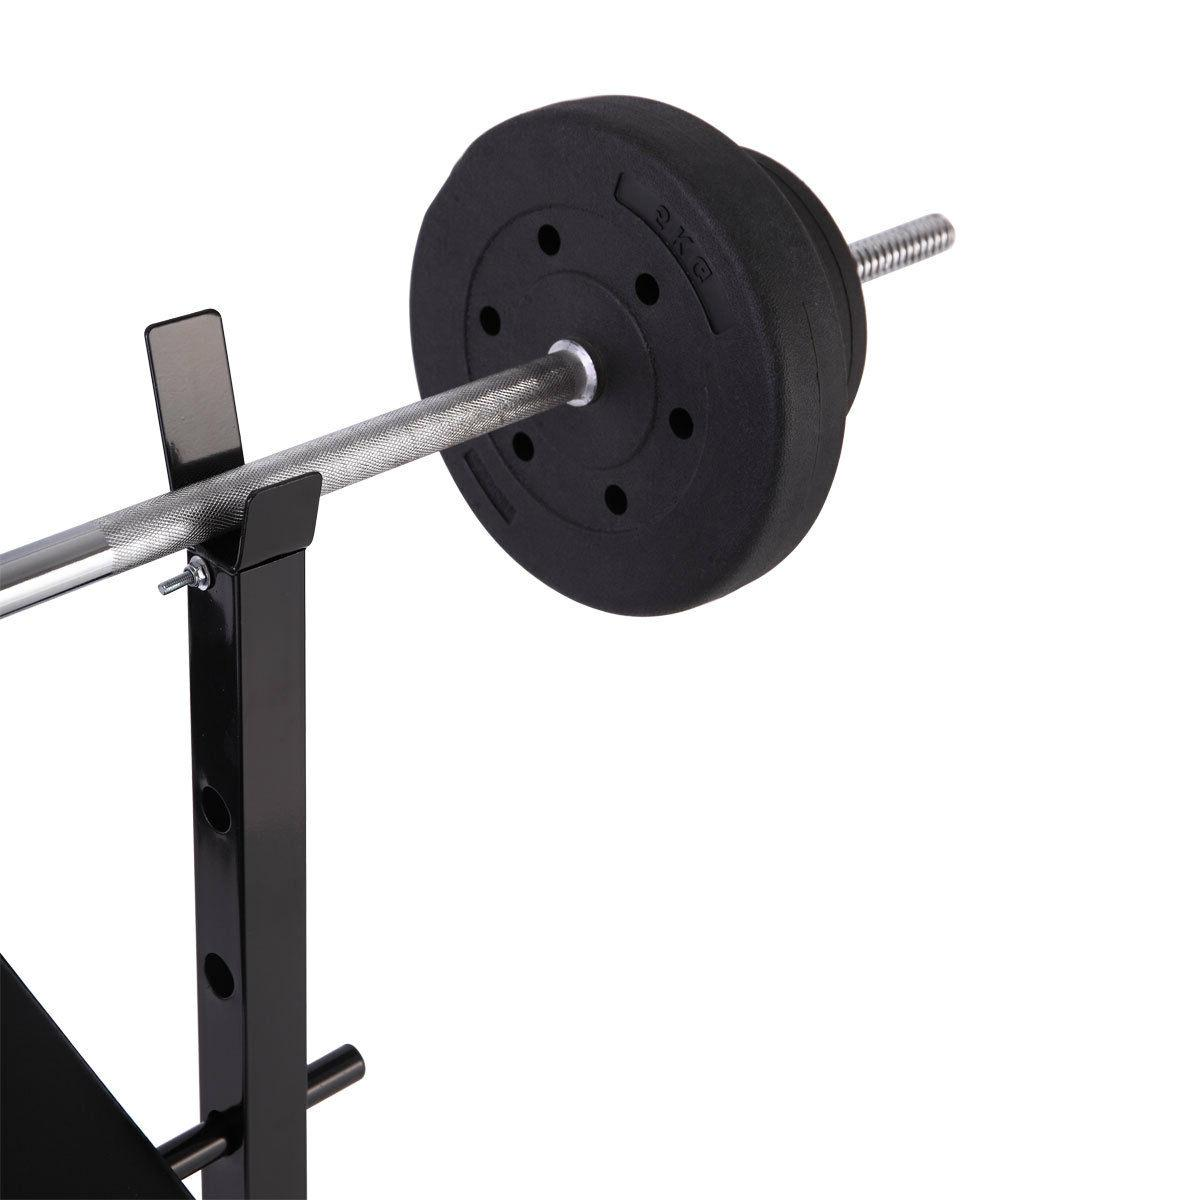 Weight Bench Lifting Press Equipment Exercise Adjustable Incline